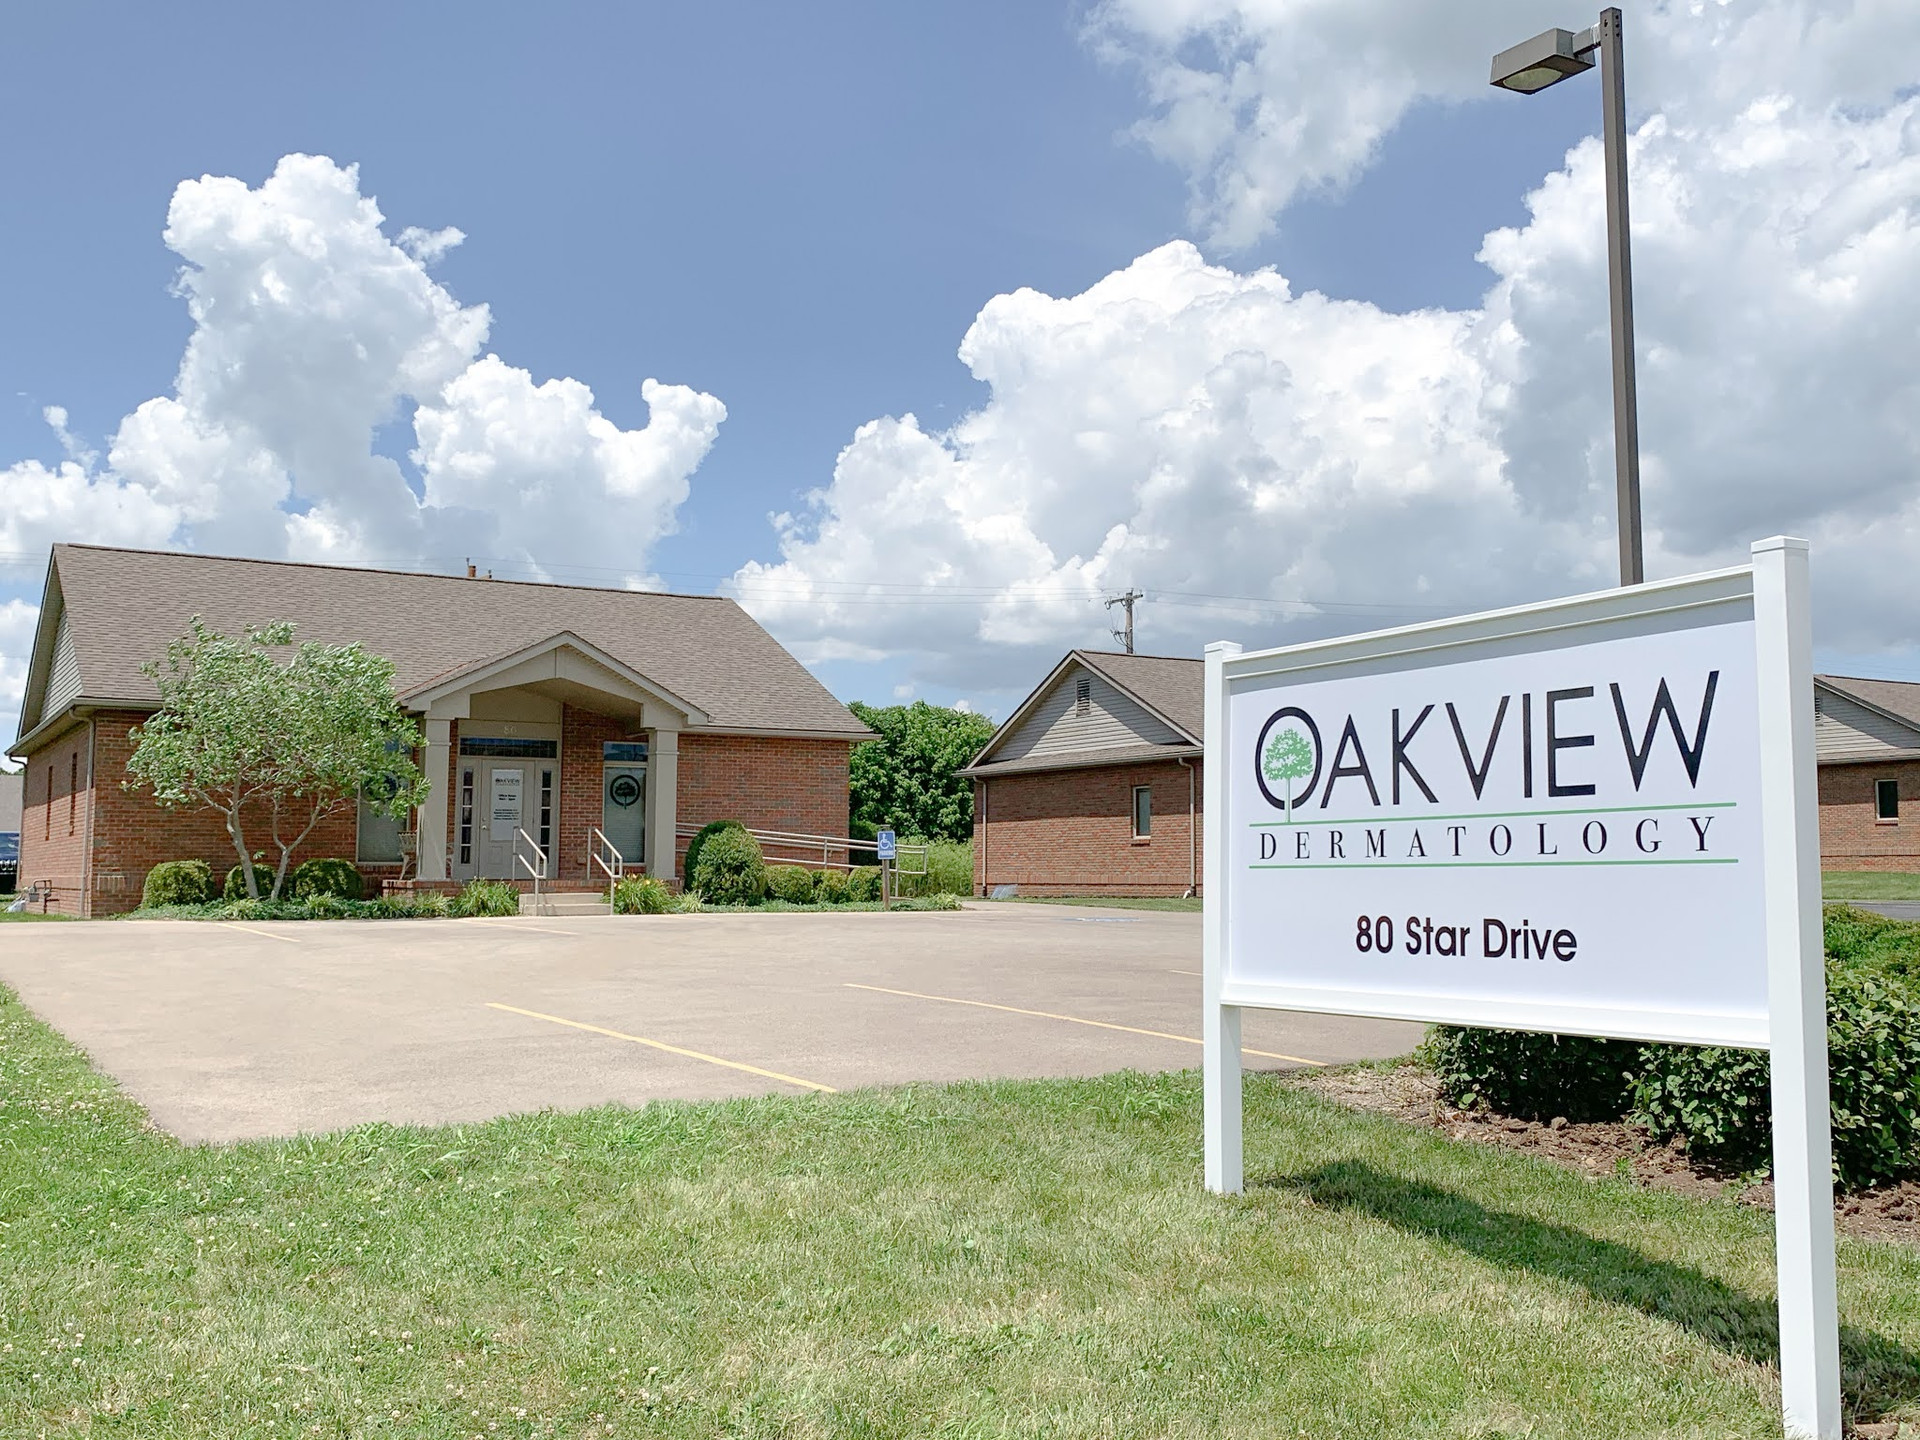 Oakview Dermatology Chillicothe